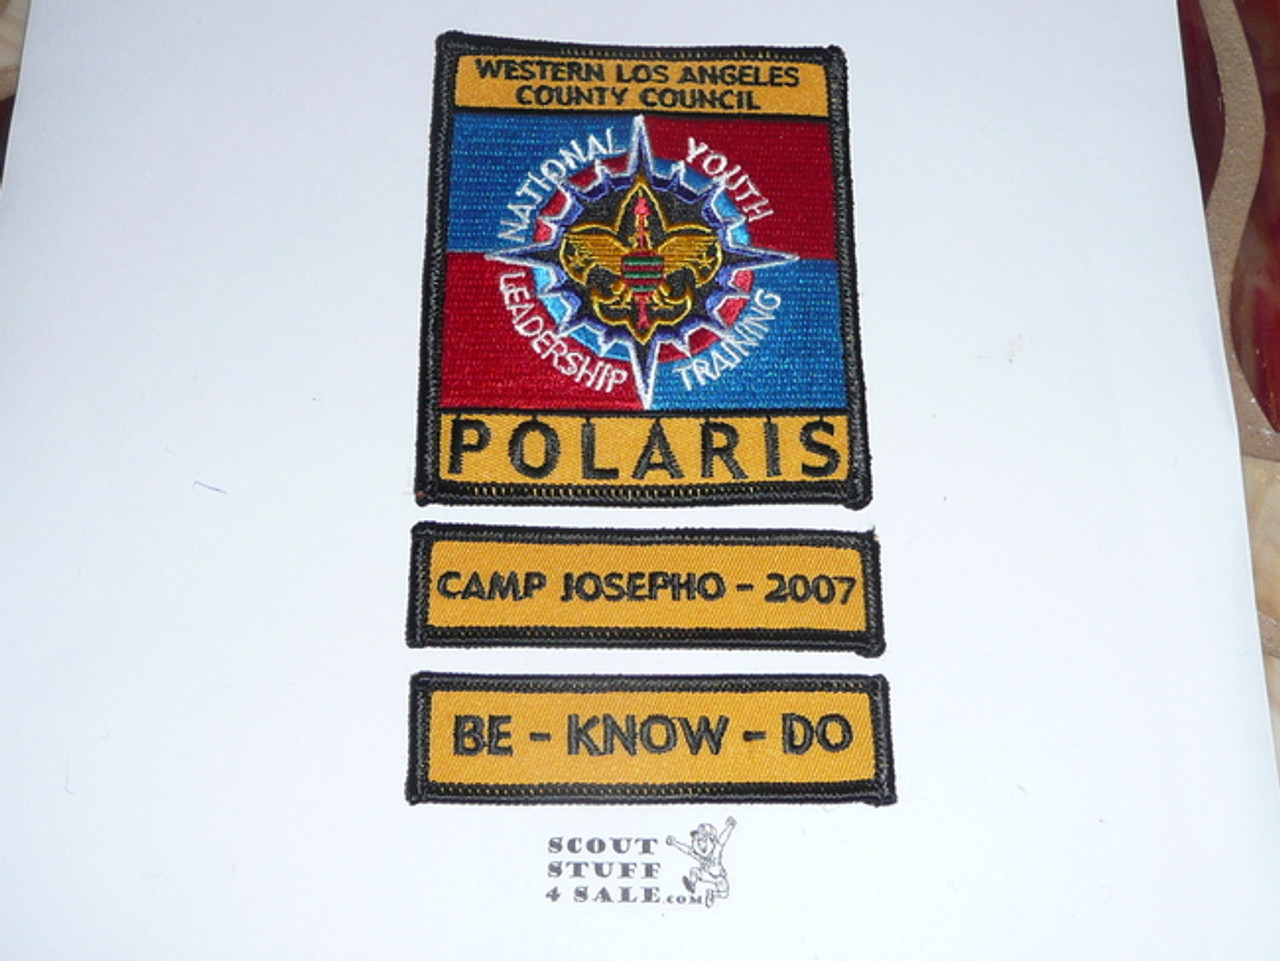 National Youth Leadership Training (NYLT) Program Participant Camp Josepho 2007 Segment Patch, Western Los Angeles County Council